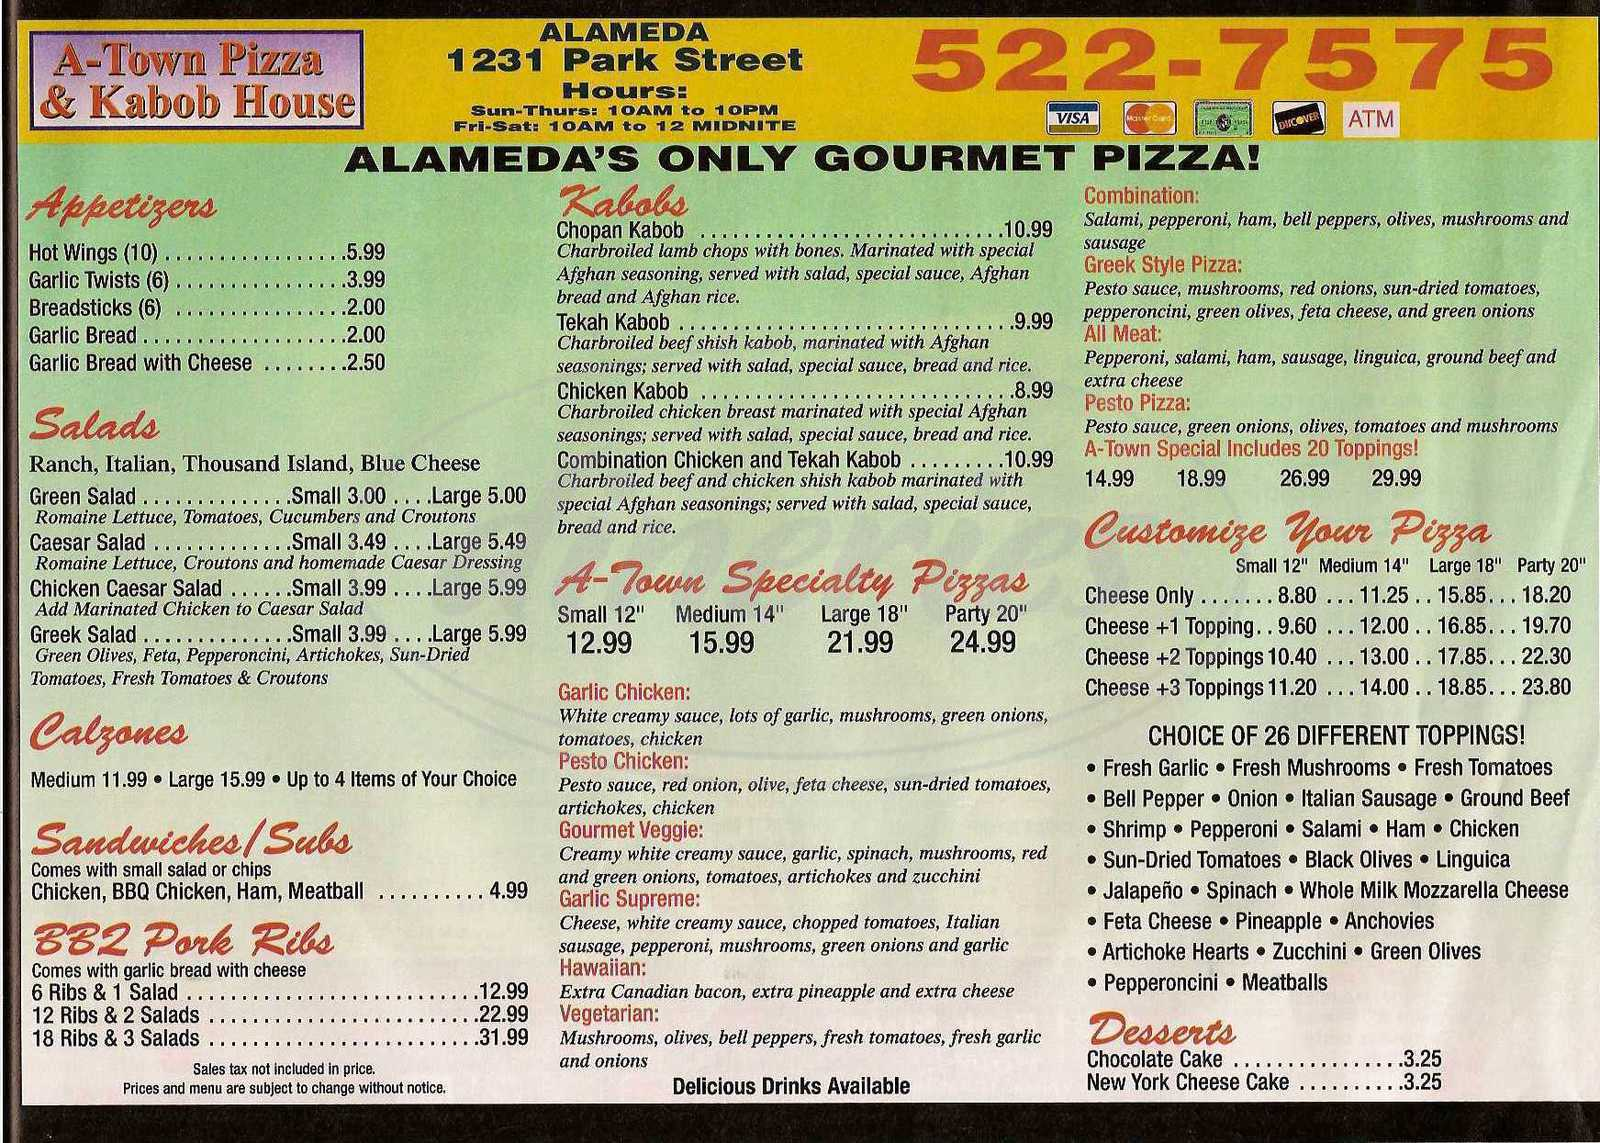 menu for A-Town Pizza and Kabob